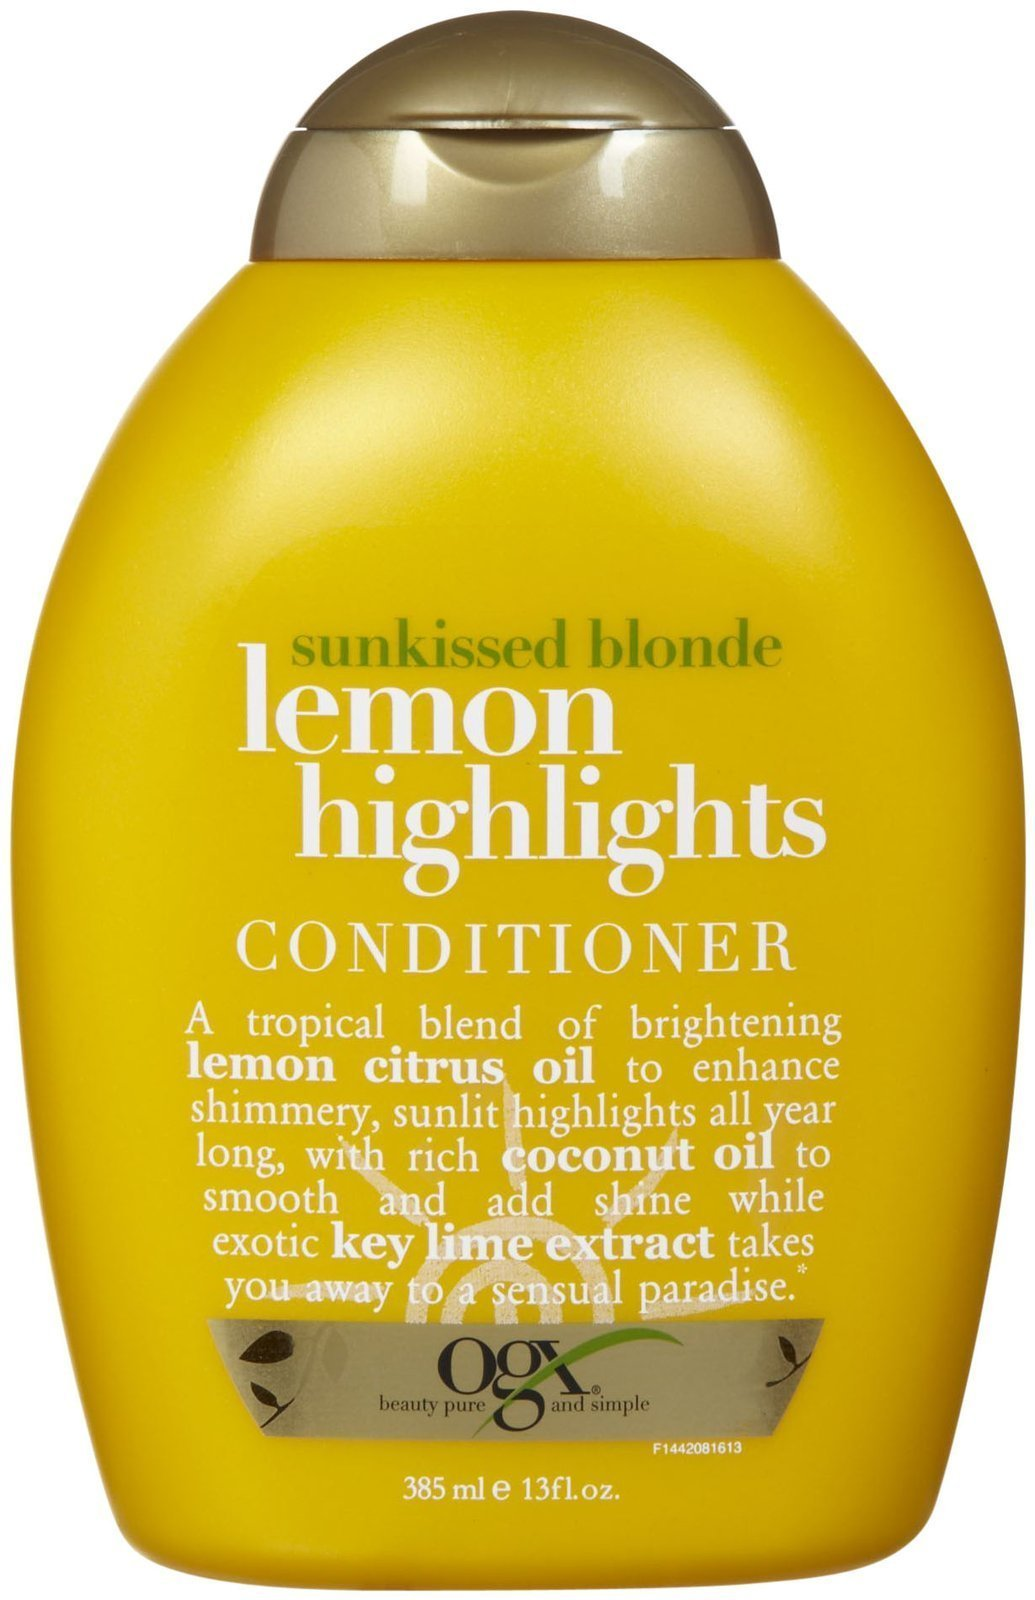 Sunkissed Blonde Lemon Highlights Conditioner